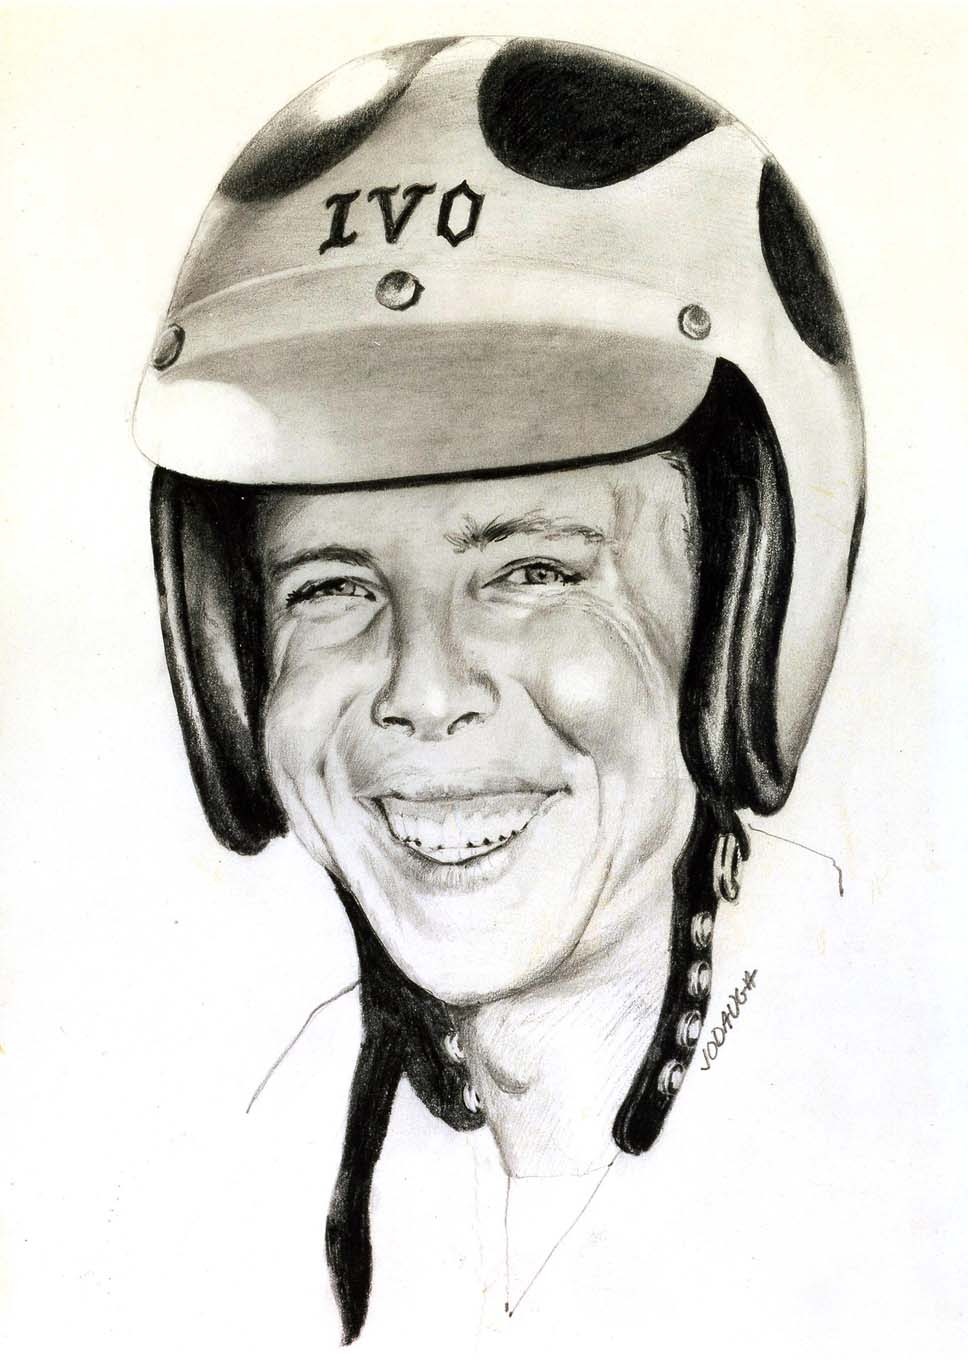 Jodauga's first published artwork was a series of portraits done in pencil for Personality Profile articles in Drag Racing Magazine in 1967 and 1968, such as this example of Tommy Ivo.